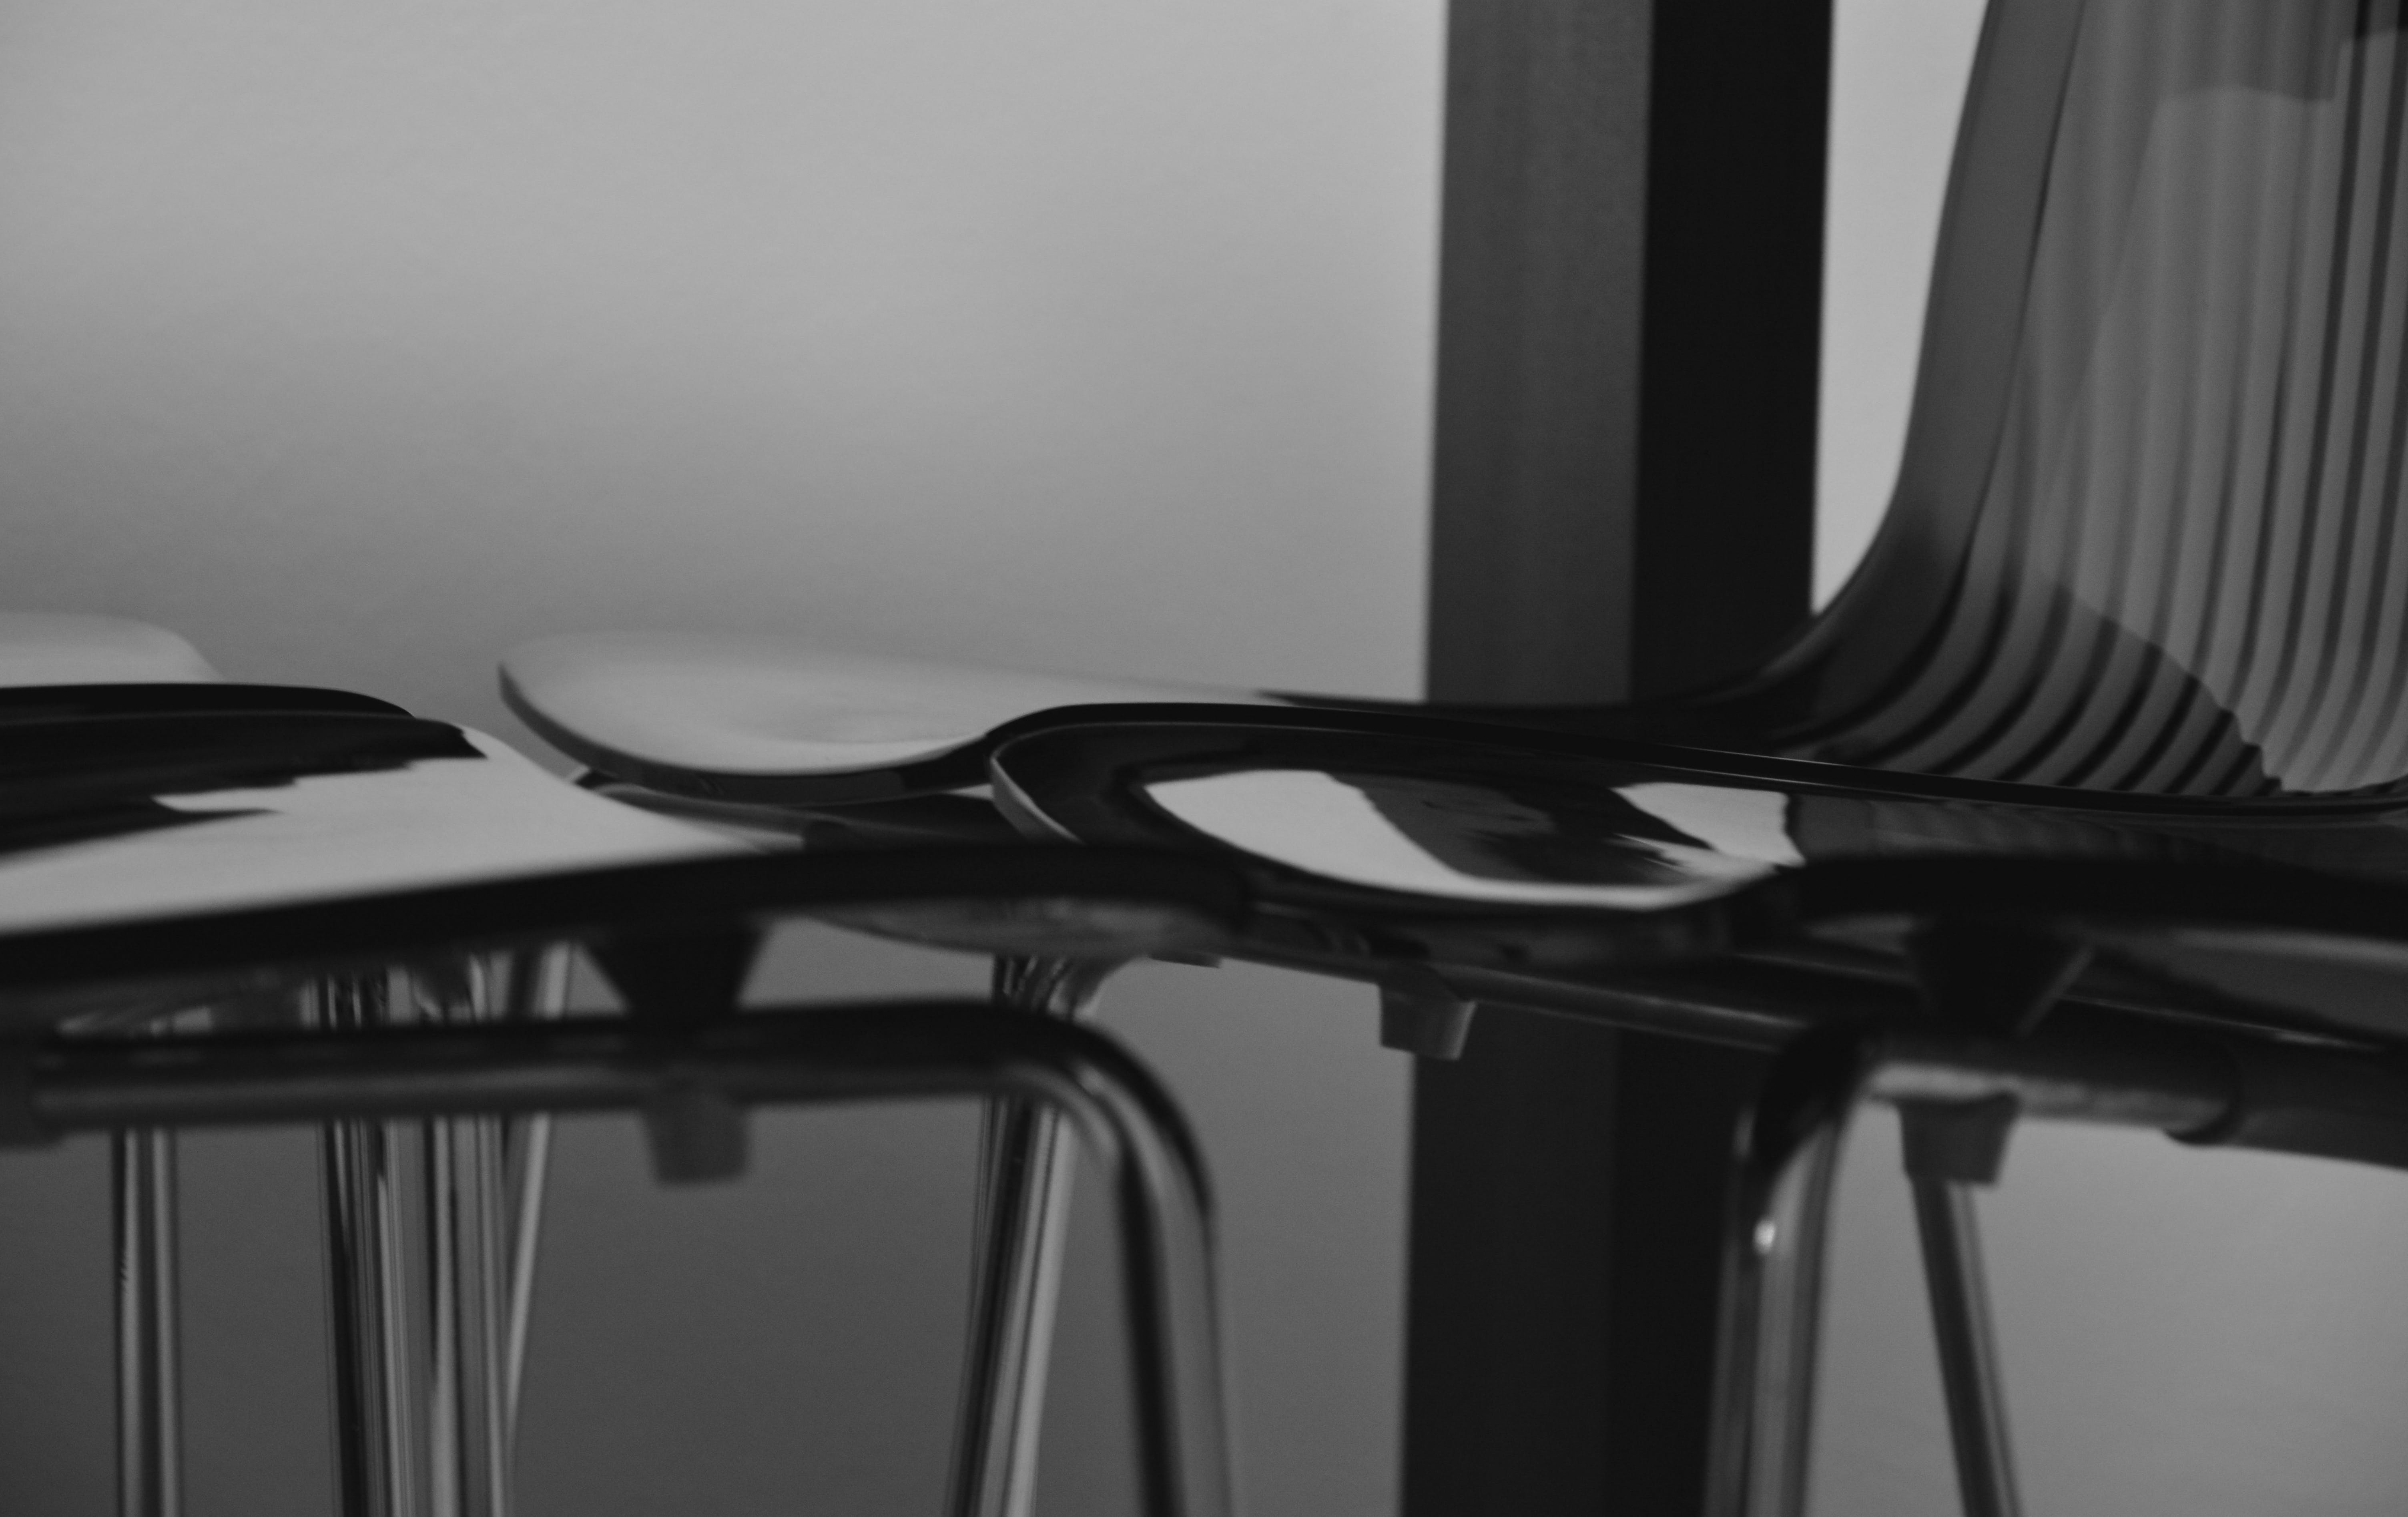 Free stock photo of black-and-white, chairs, close-up, furniture